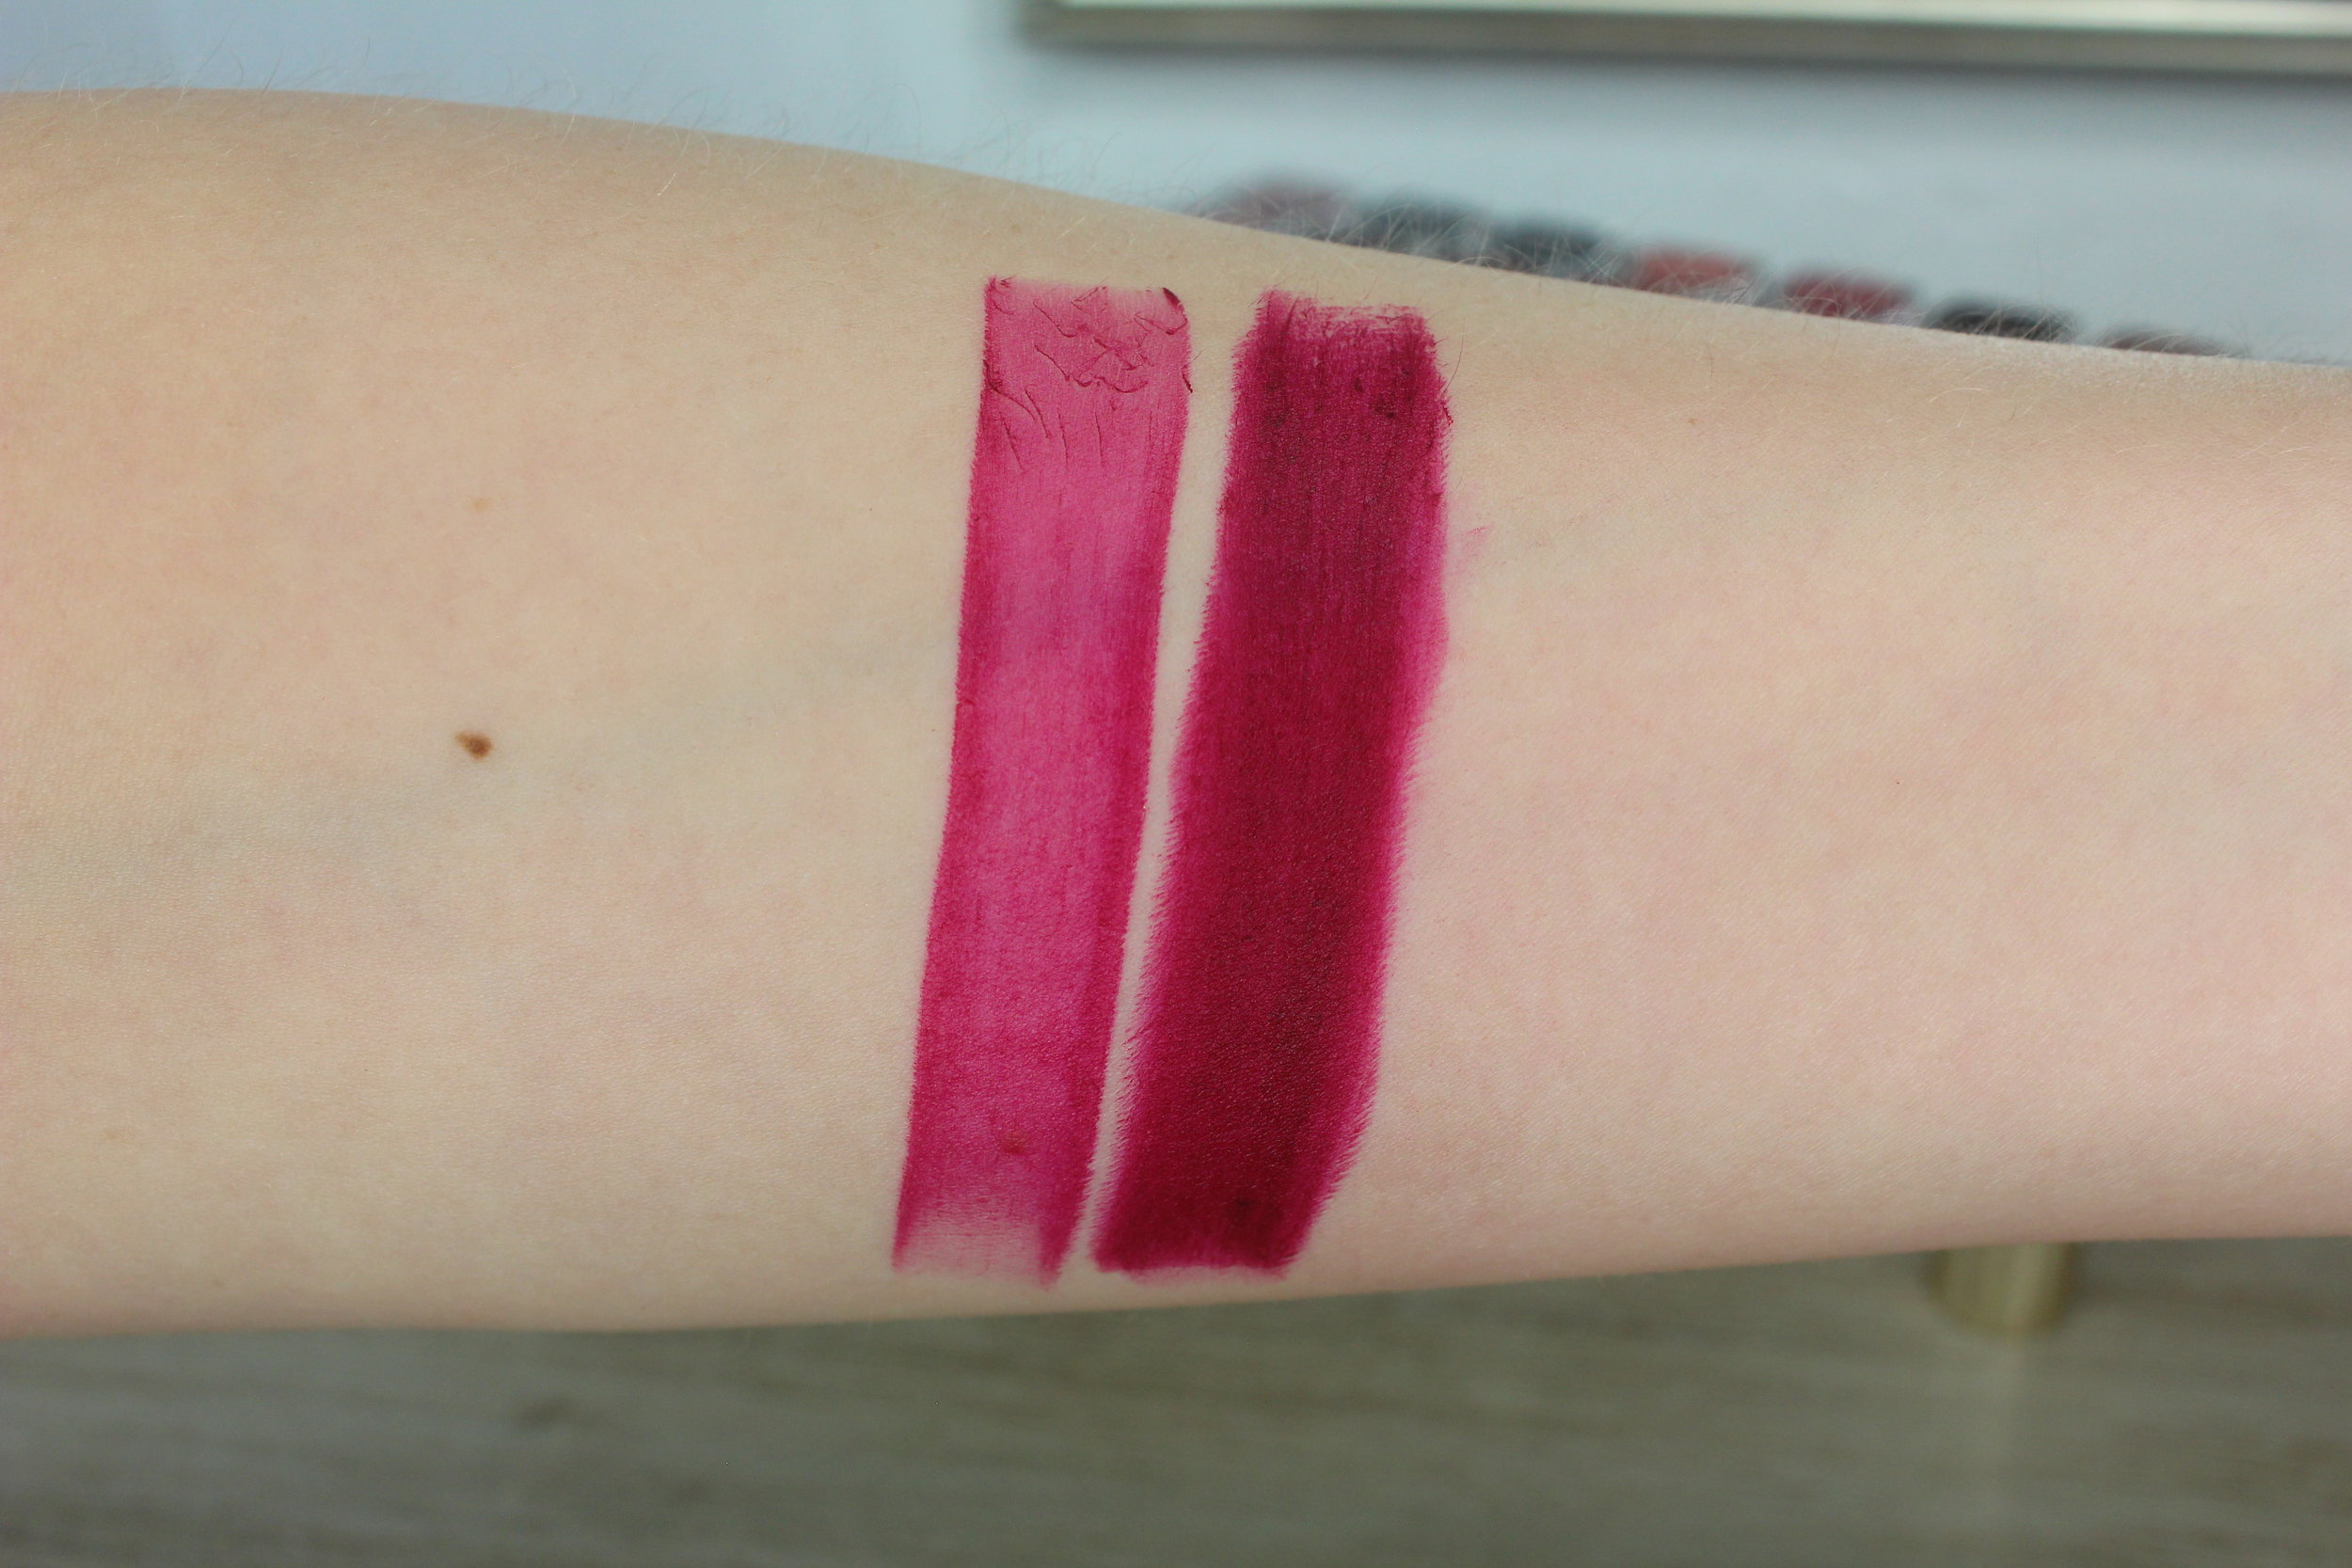 Estee Lauder Love Object (410) swatch